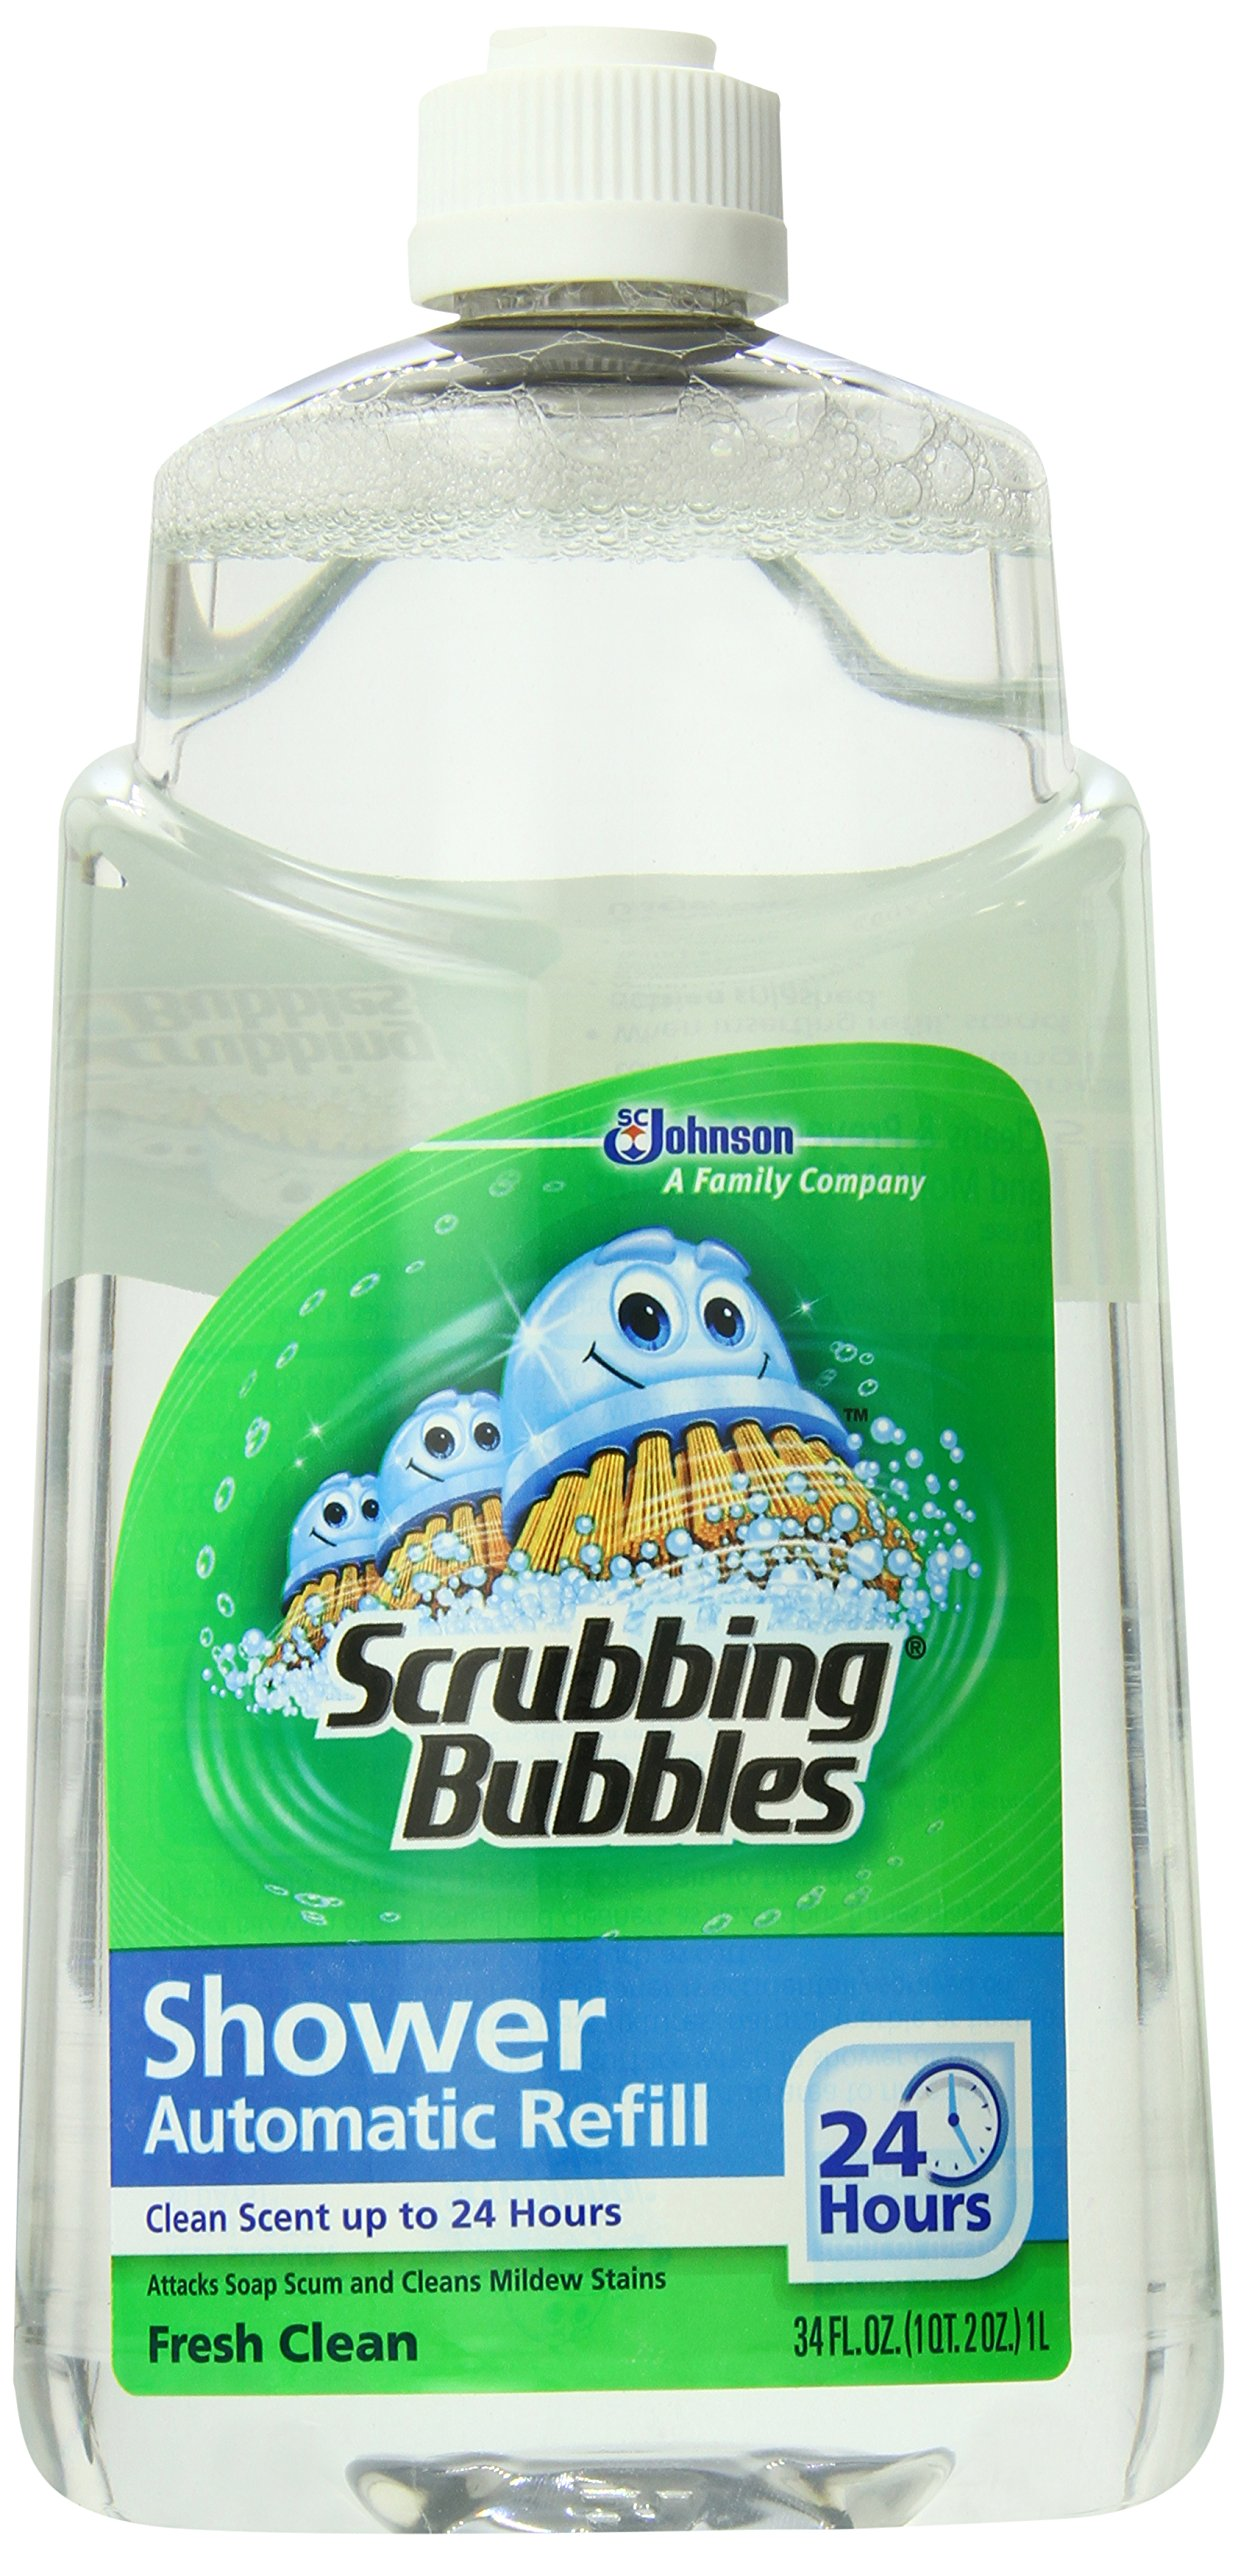 scrubbing bubbles automatic shower cleaner instructions